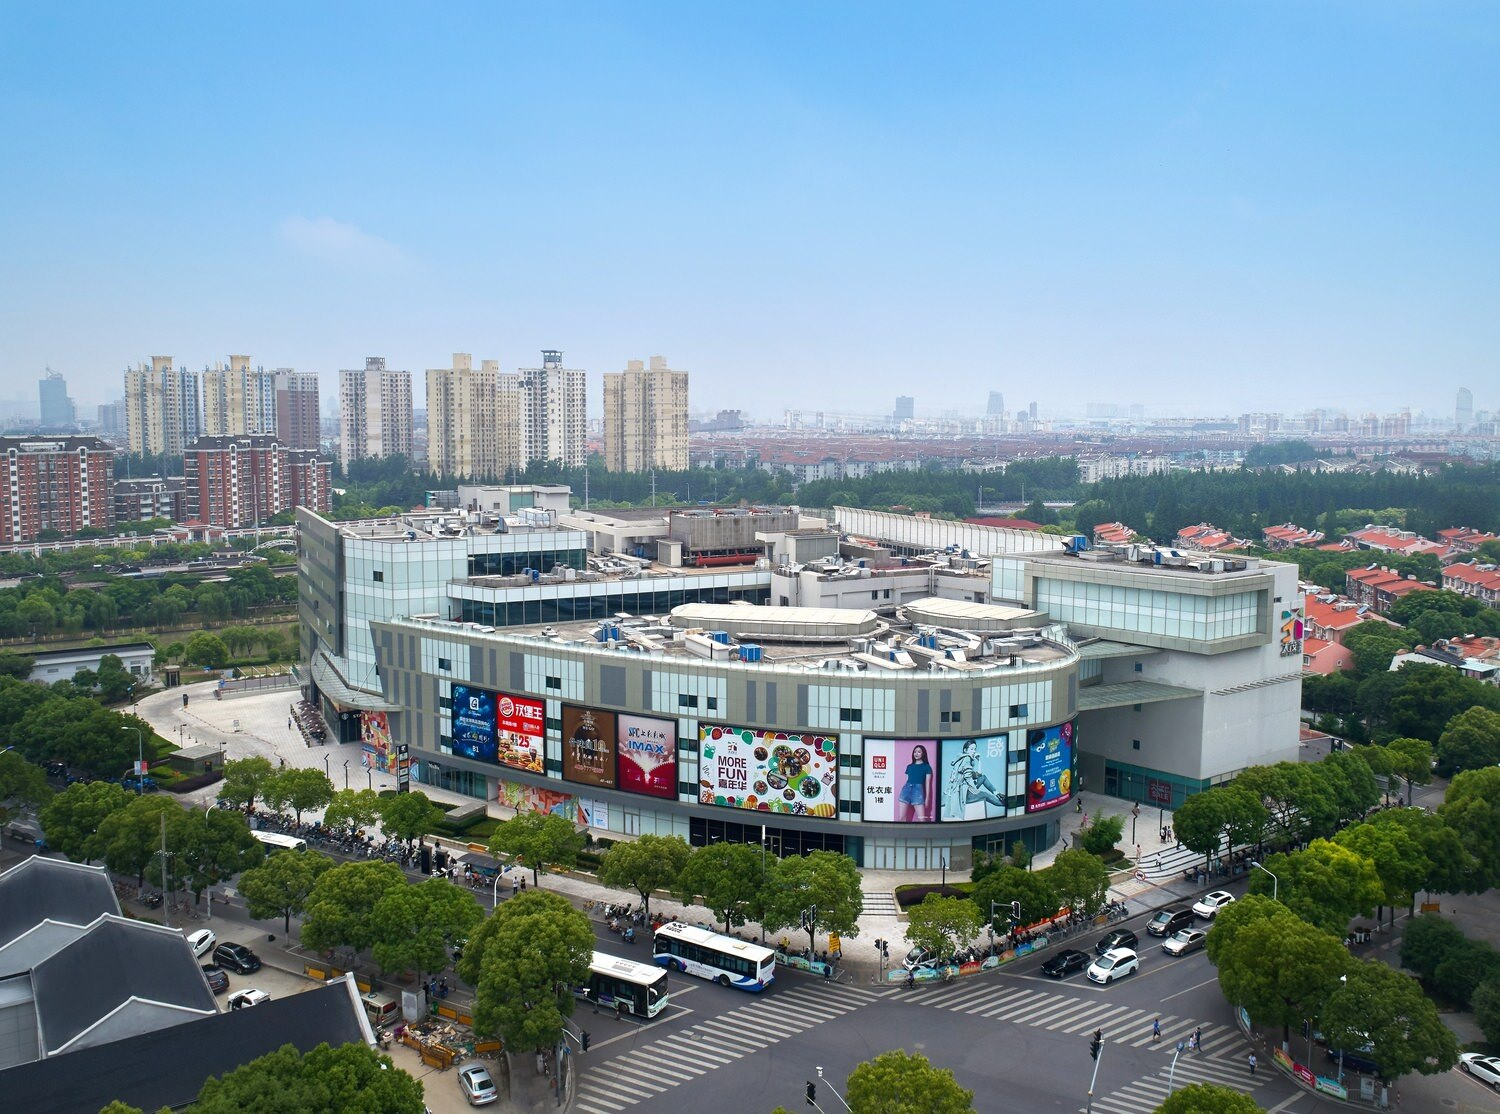 A large shopping center that has ads around the outside of it and it is near a large city that has some tall buildings in it.